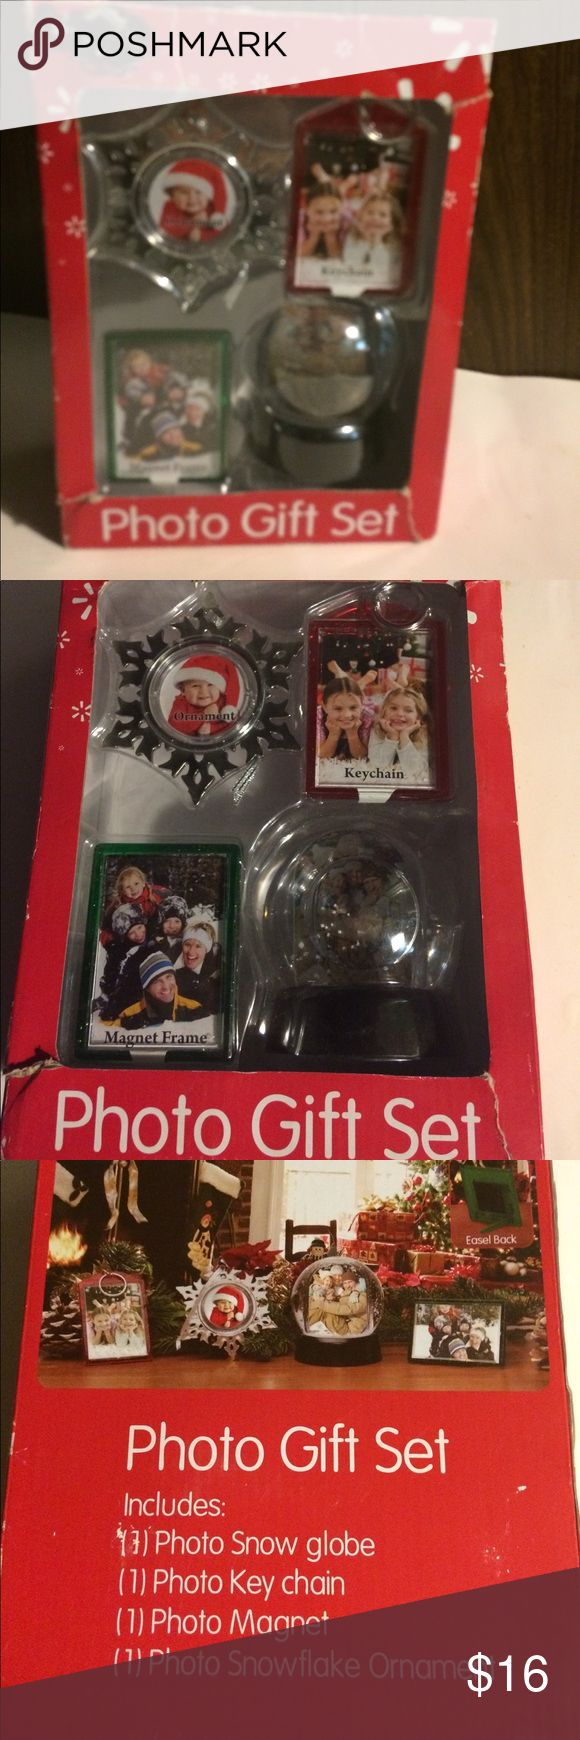 Christmas photo gift set picture frames Gift set of 4 photo snow globe, key chain, photo magnet, snowflake ornament. Other